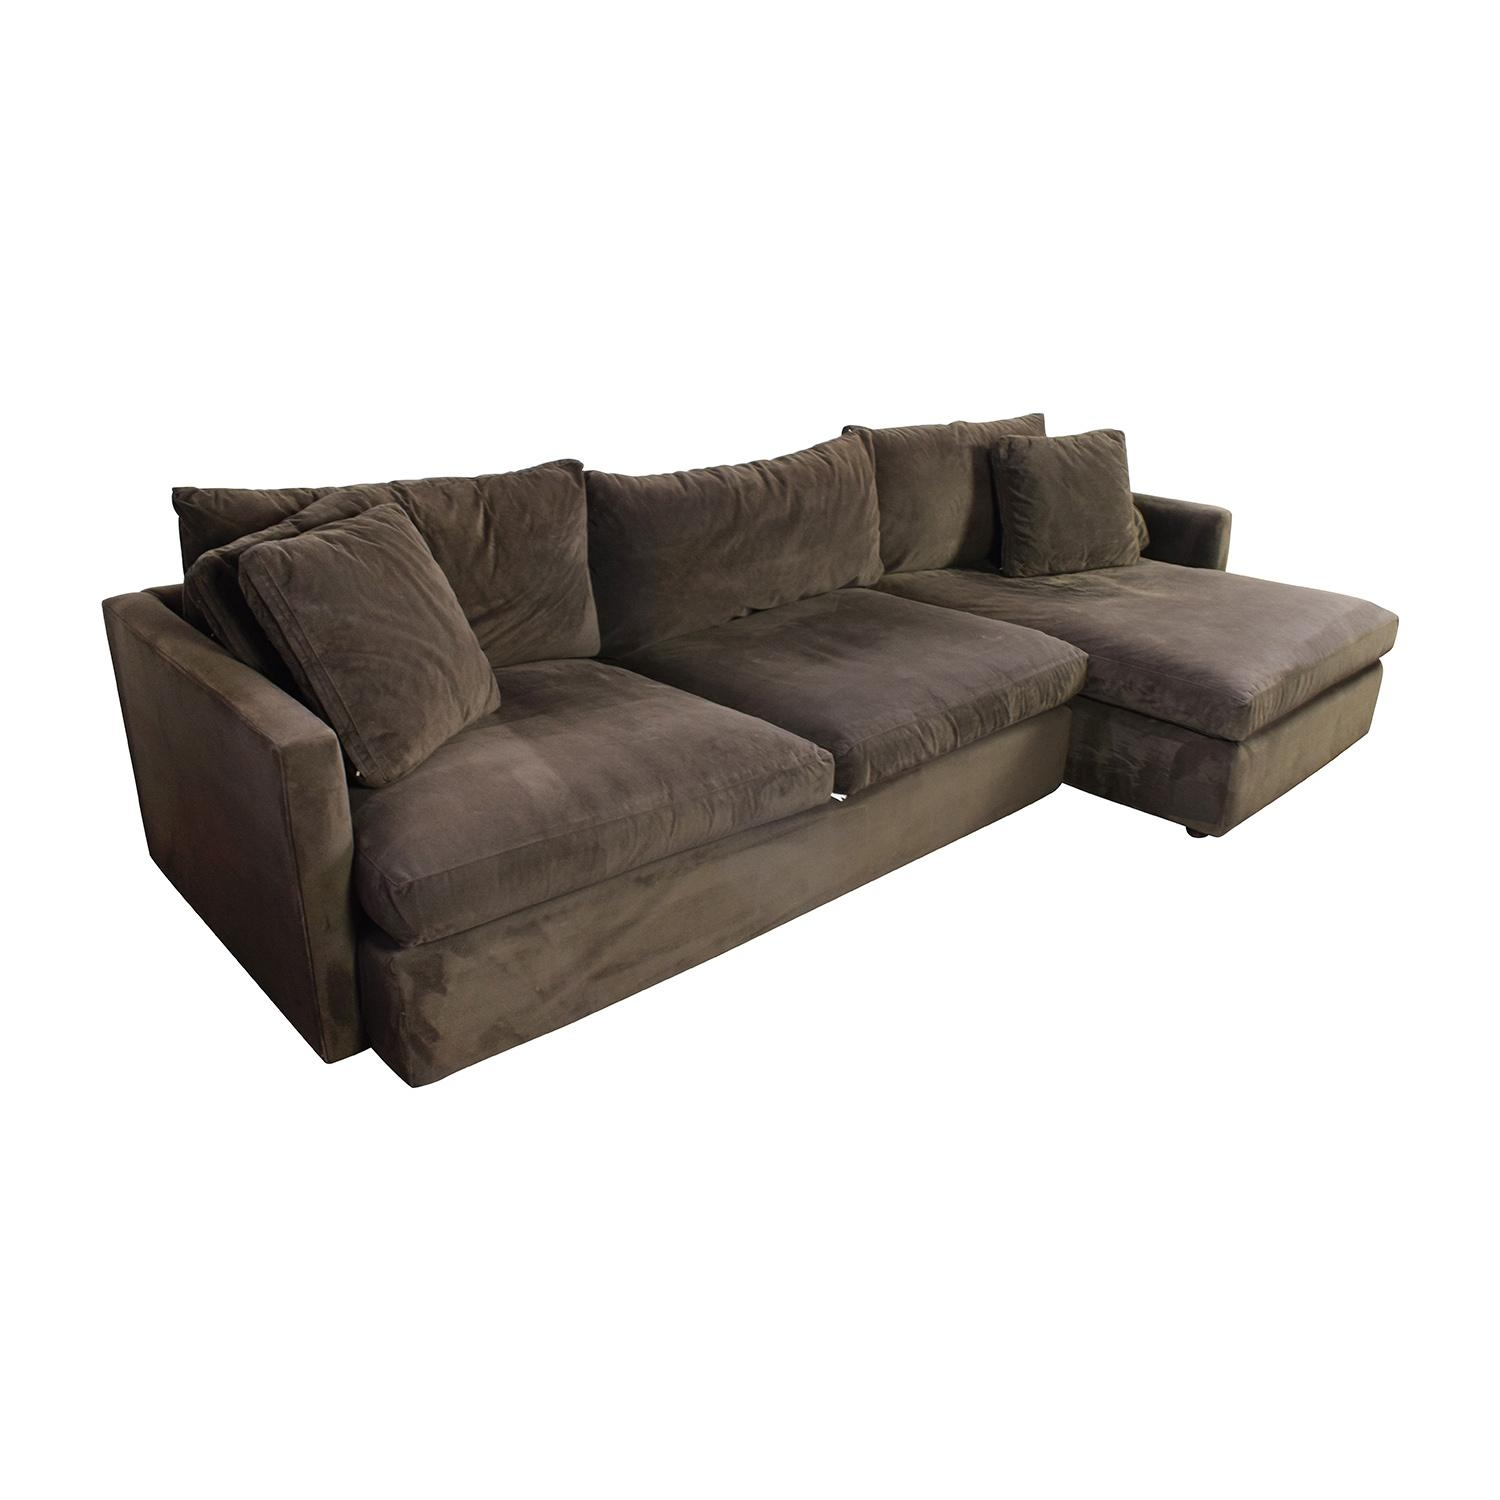 89% Off – Crate And Barrel Crate & Barrel Brown Left Arm Sectional Regarding Crate And Barrel Sectional (Image 5 of 15)